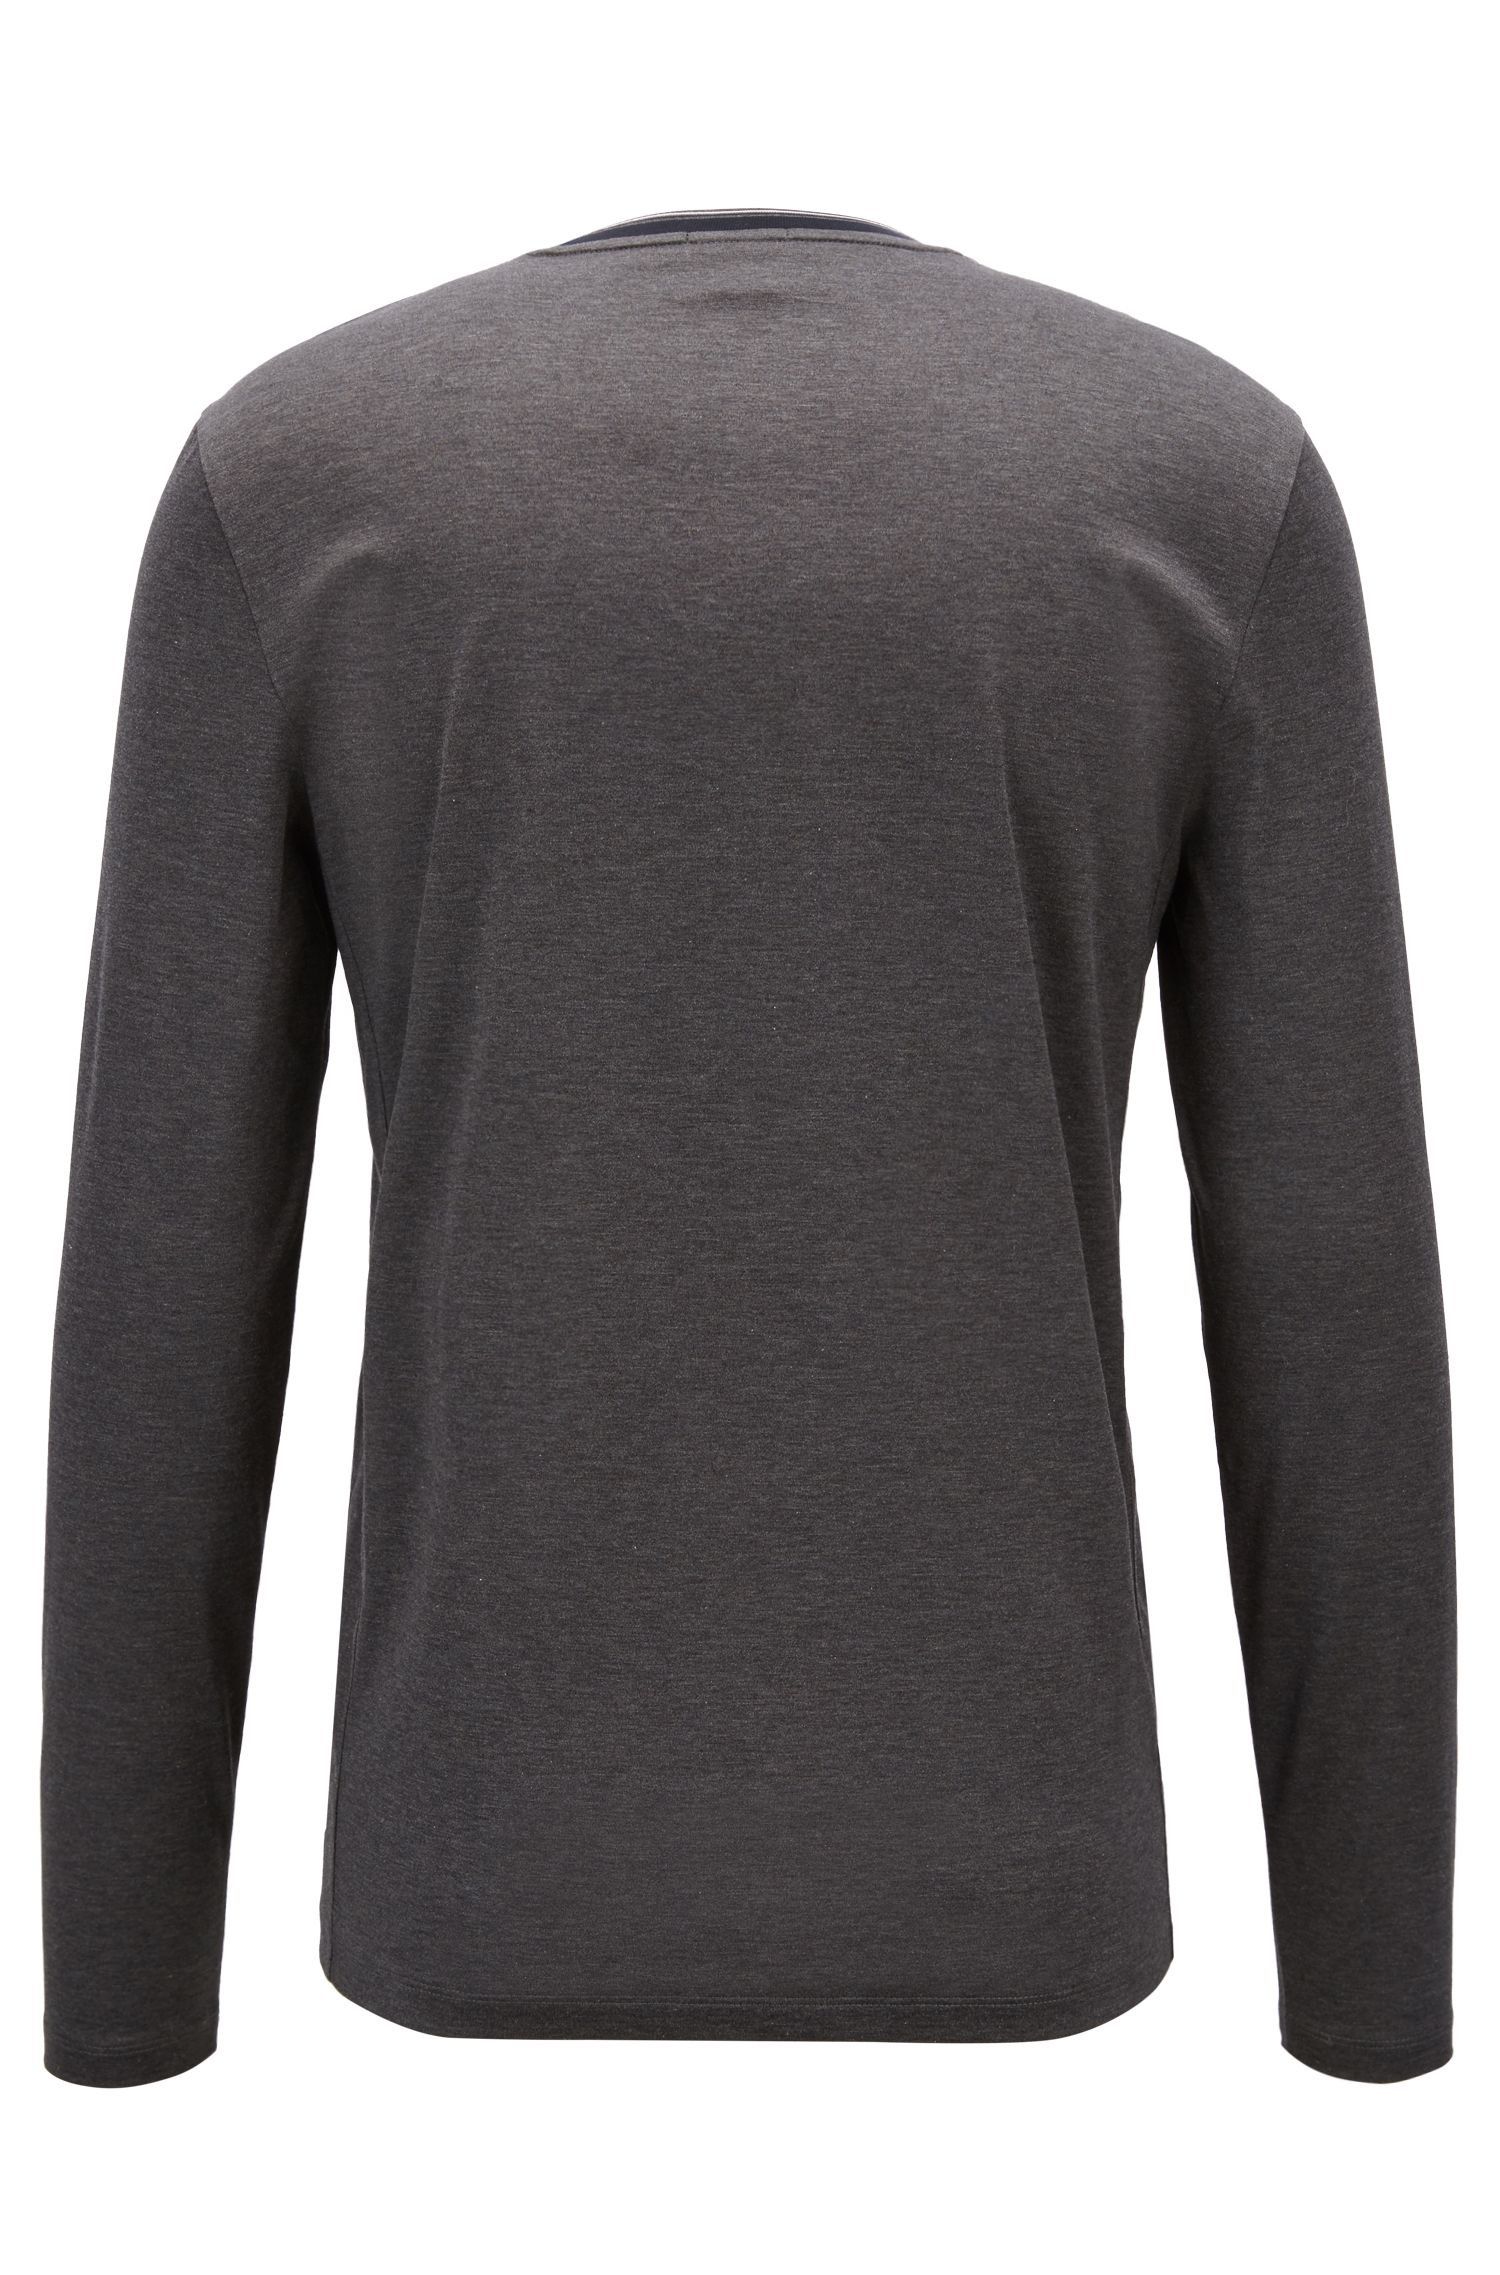 Long-sleeved T-shirt in mercerized cotton with striped neckline, Open Grey